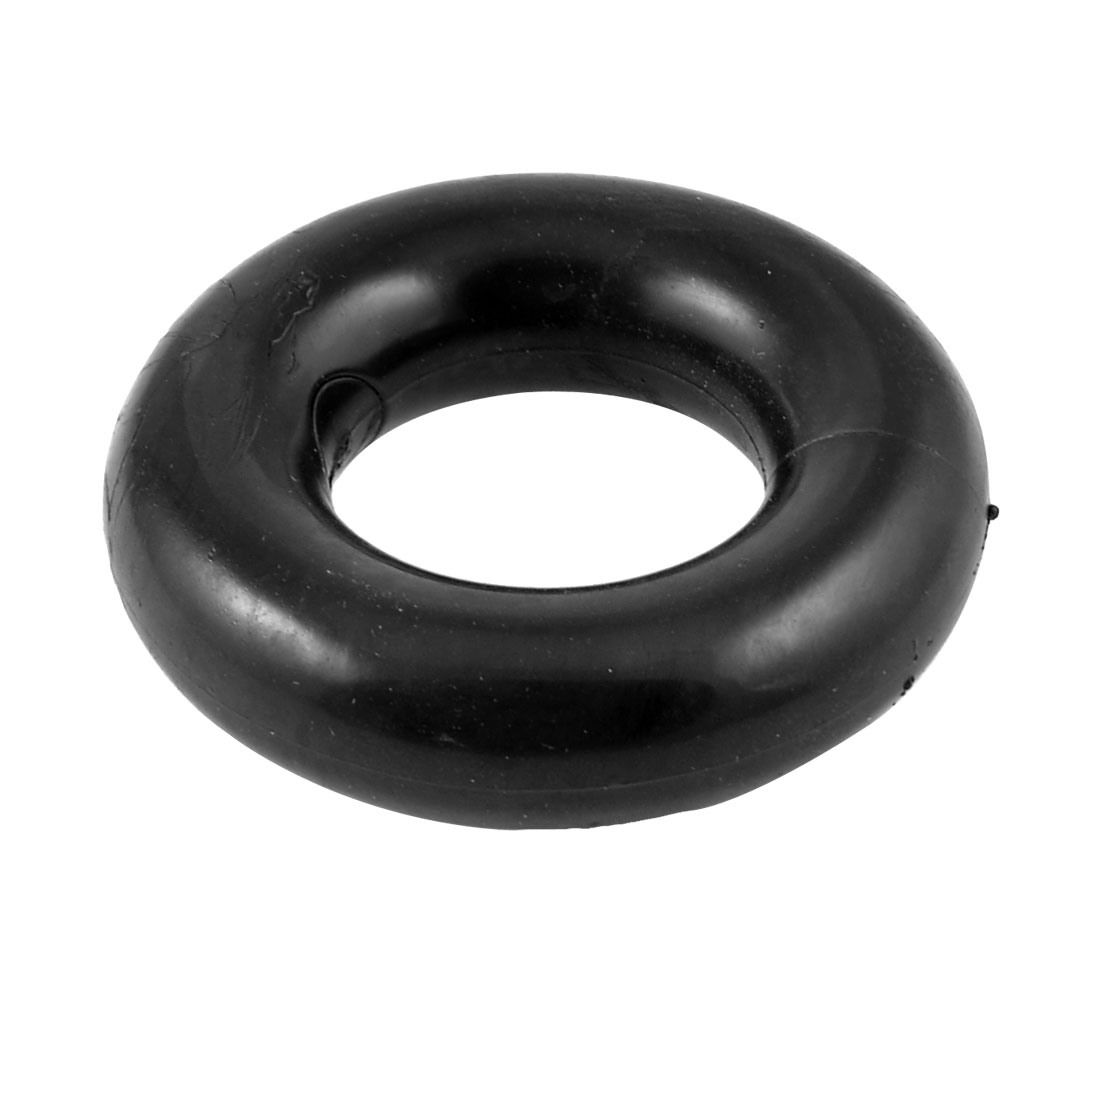 Elastic Soft Plastic Round Massage Finger Hand Ring Grip Black